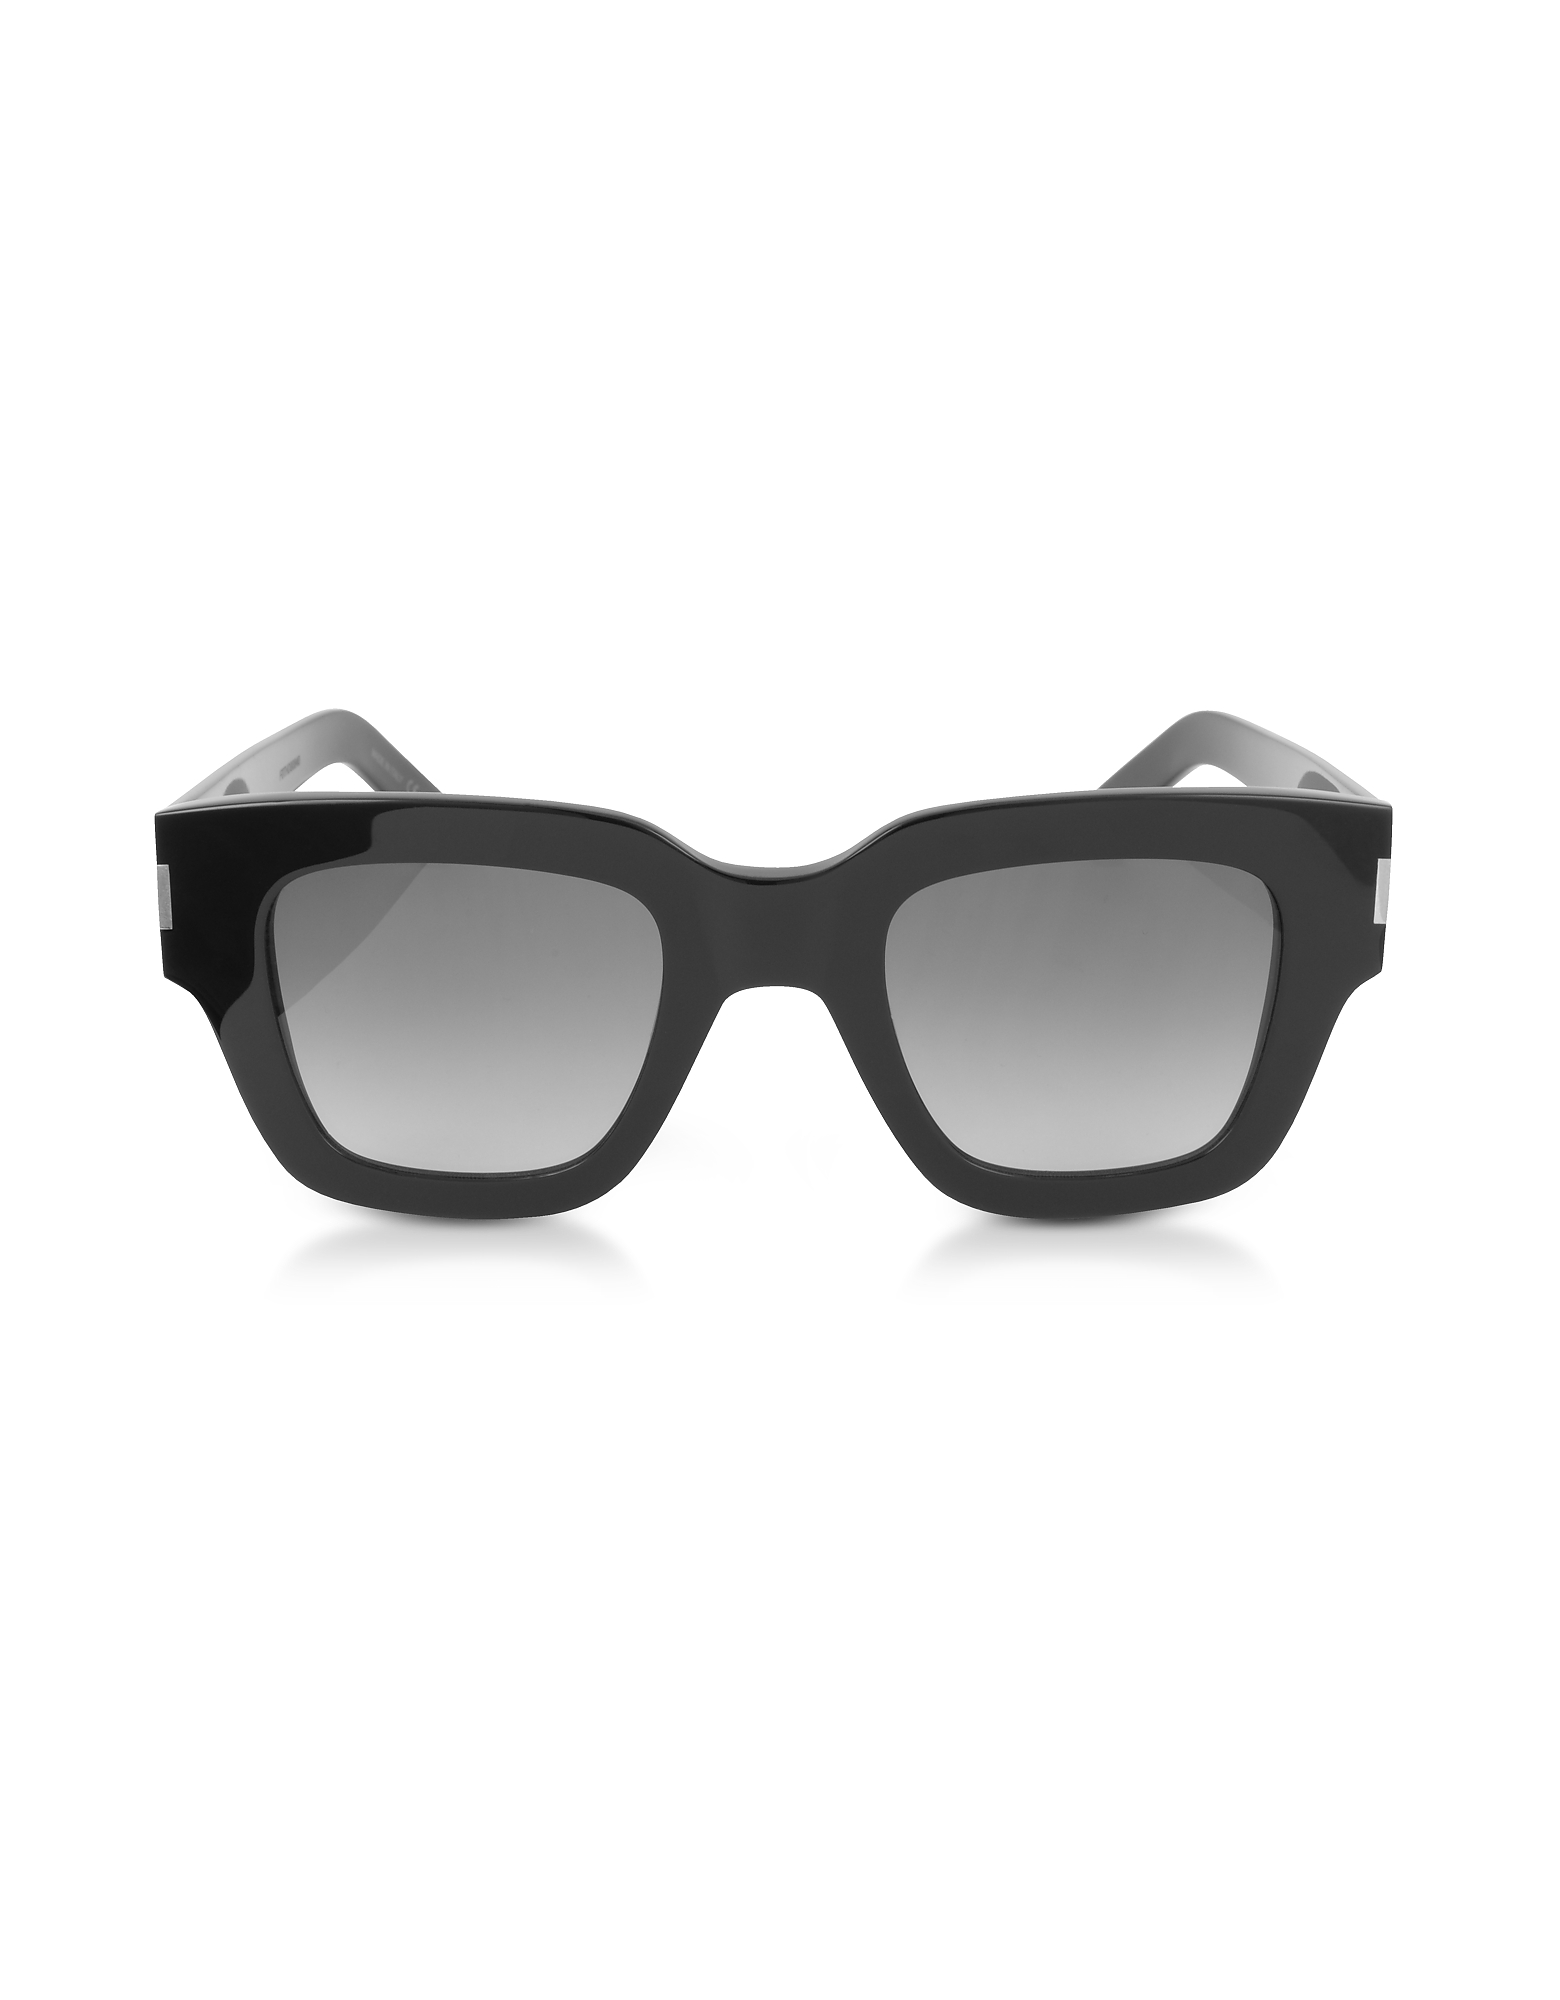 Saint Laurent Designer Sunglasses, SL 184 SLIM Squared Acetate Sunglasses